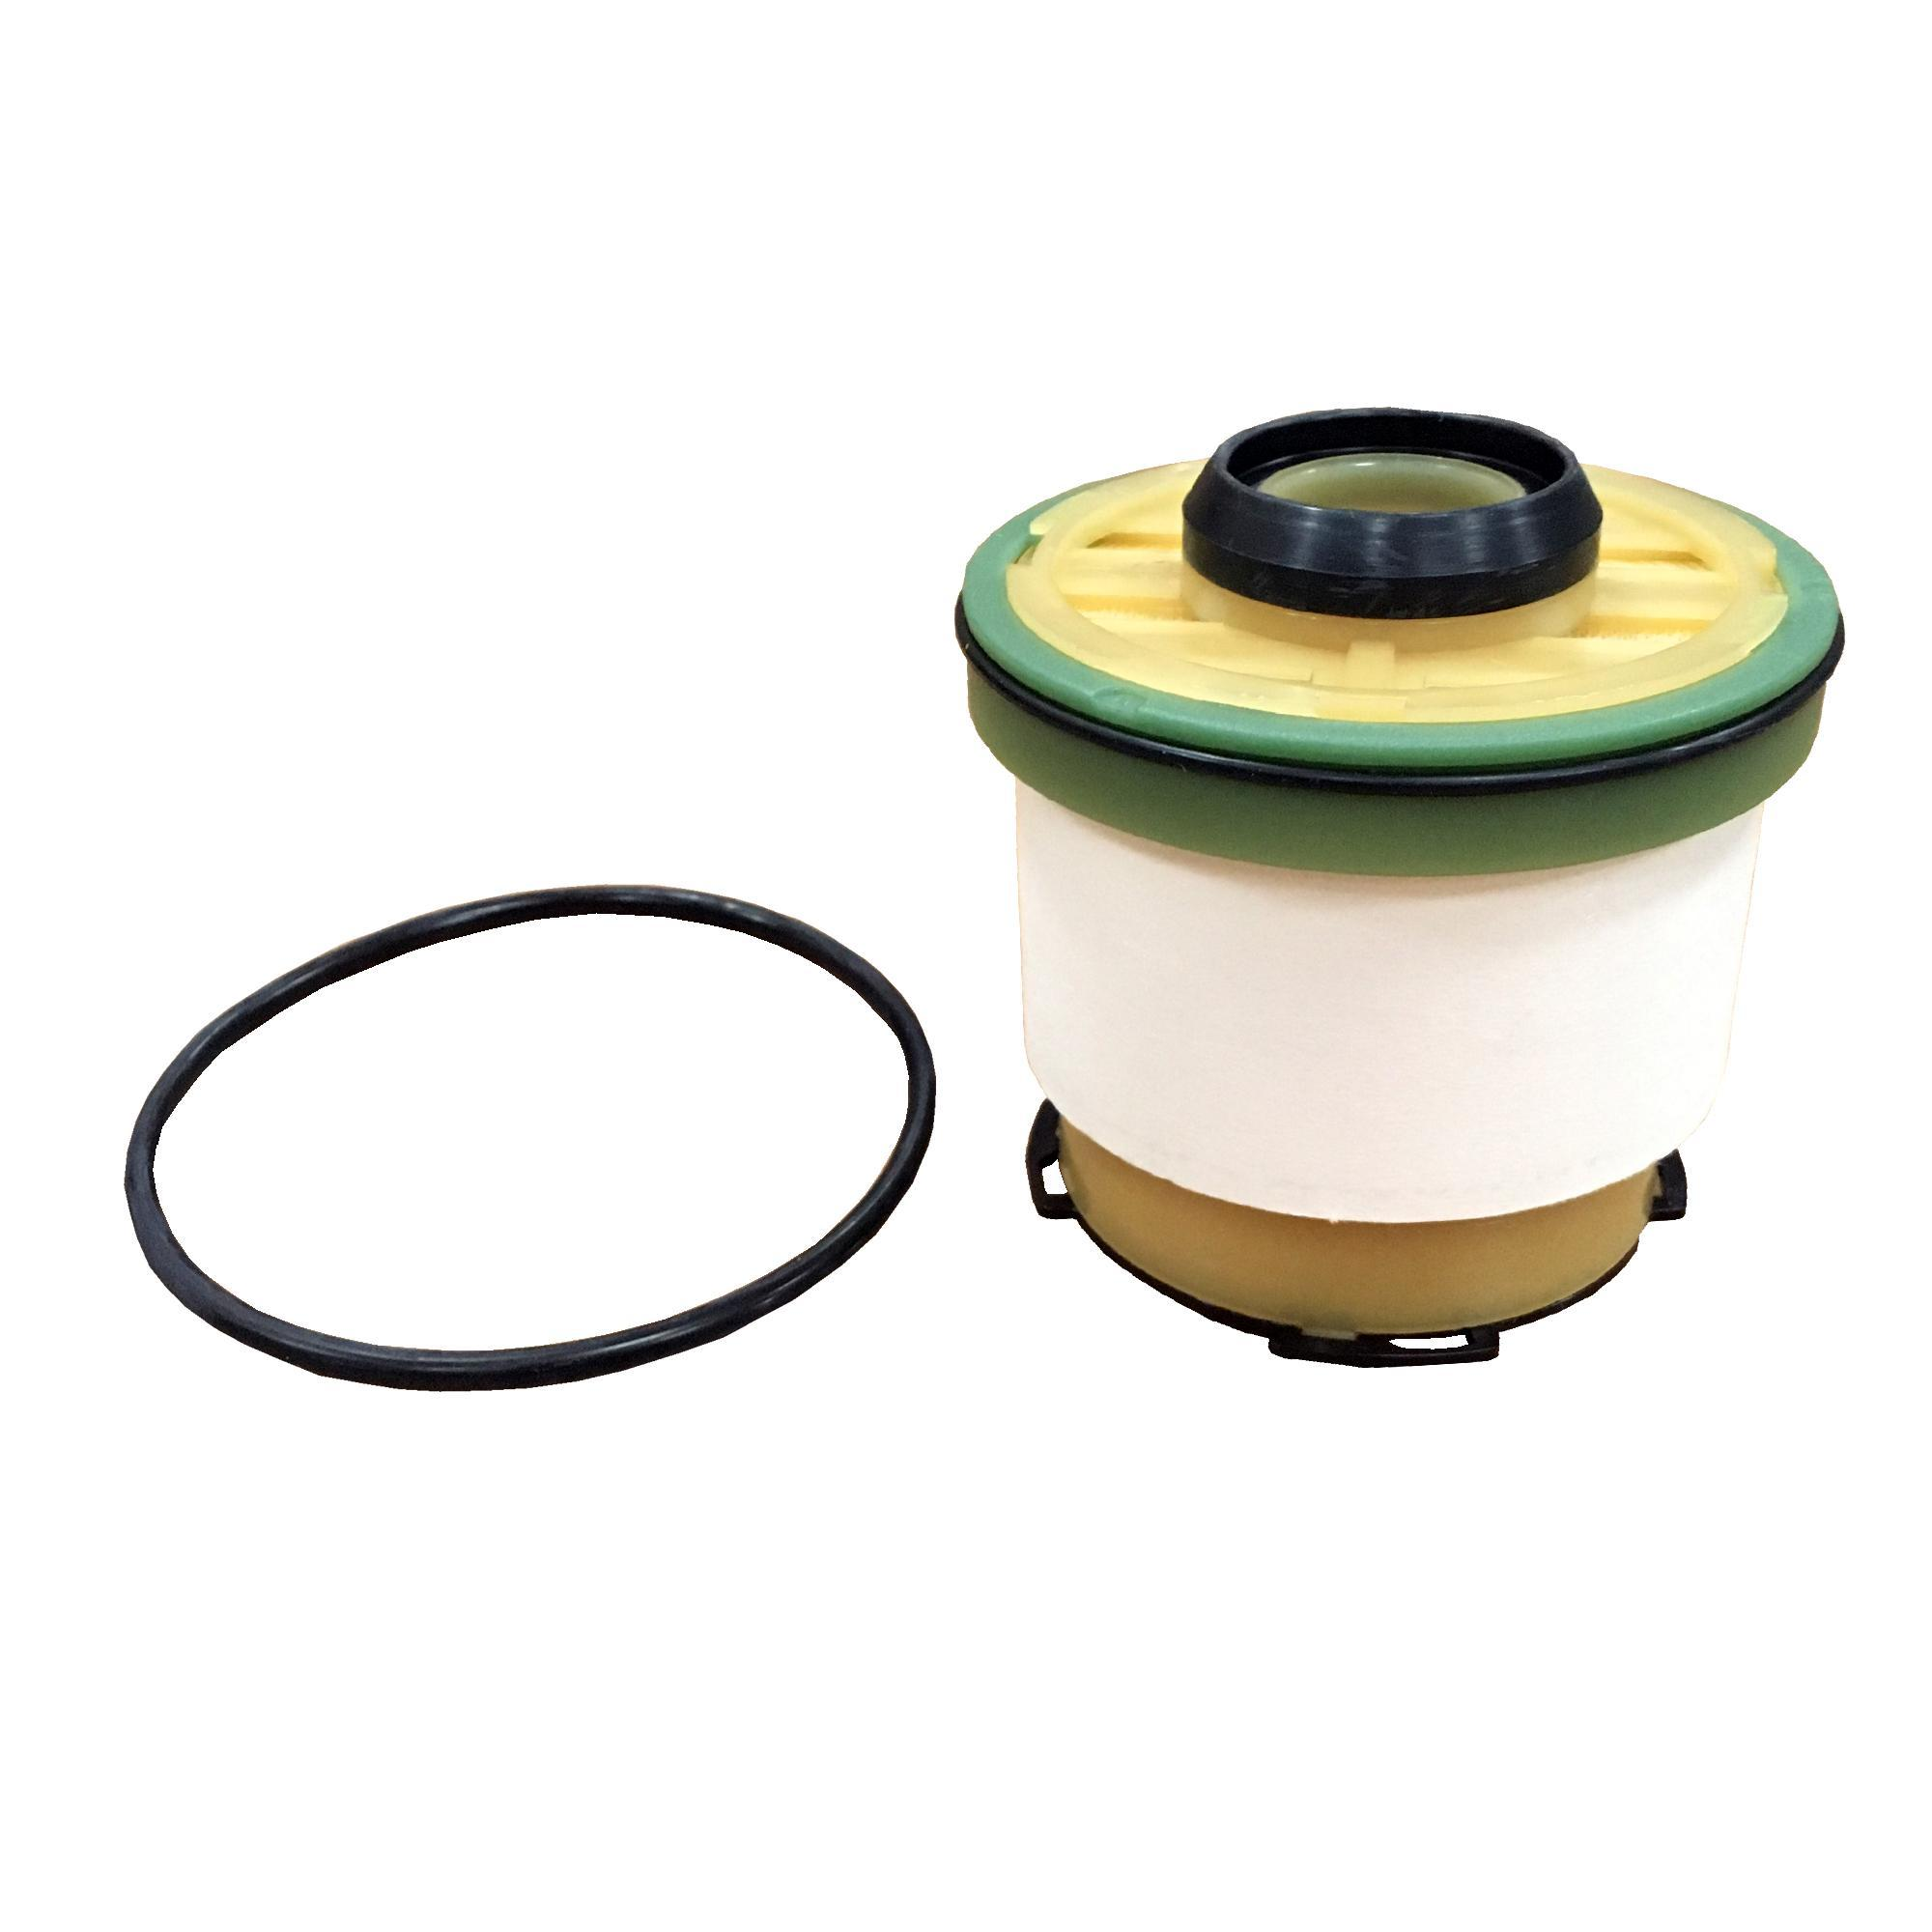 2001 Accord Fuel Filter For Sale Gas Online Brands Prices Reviews In Fleetmax Ford Ranger 22 32 Tdci Diesel And Everest 2012 2017